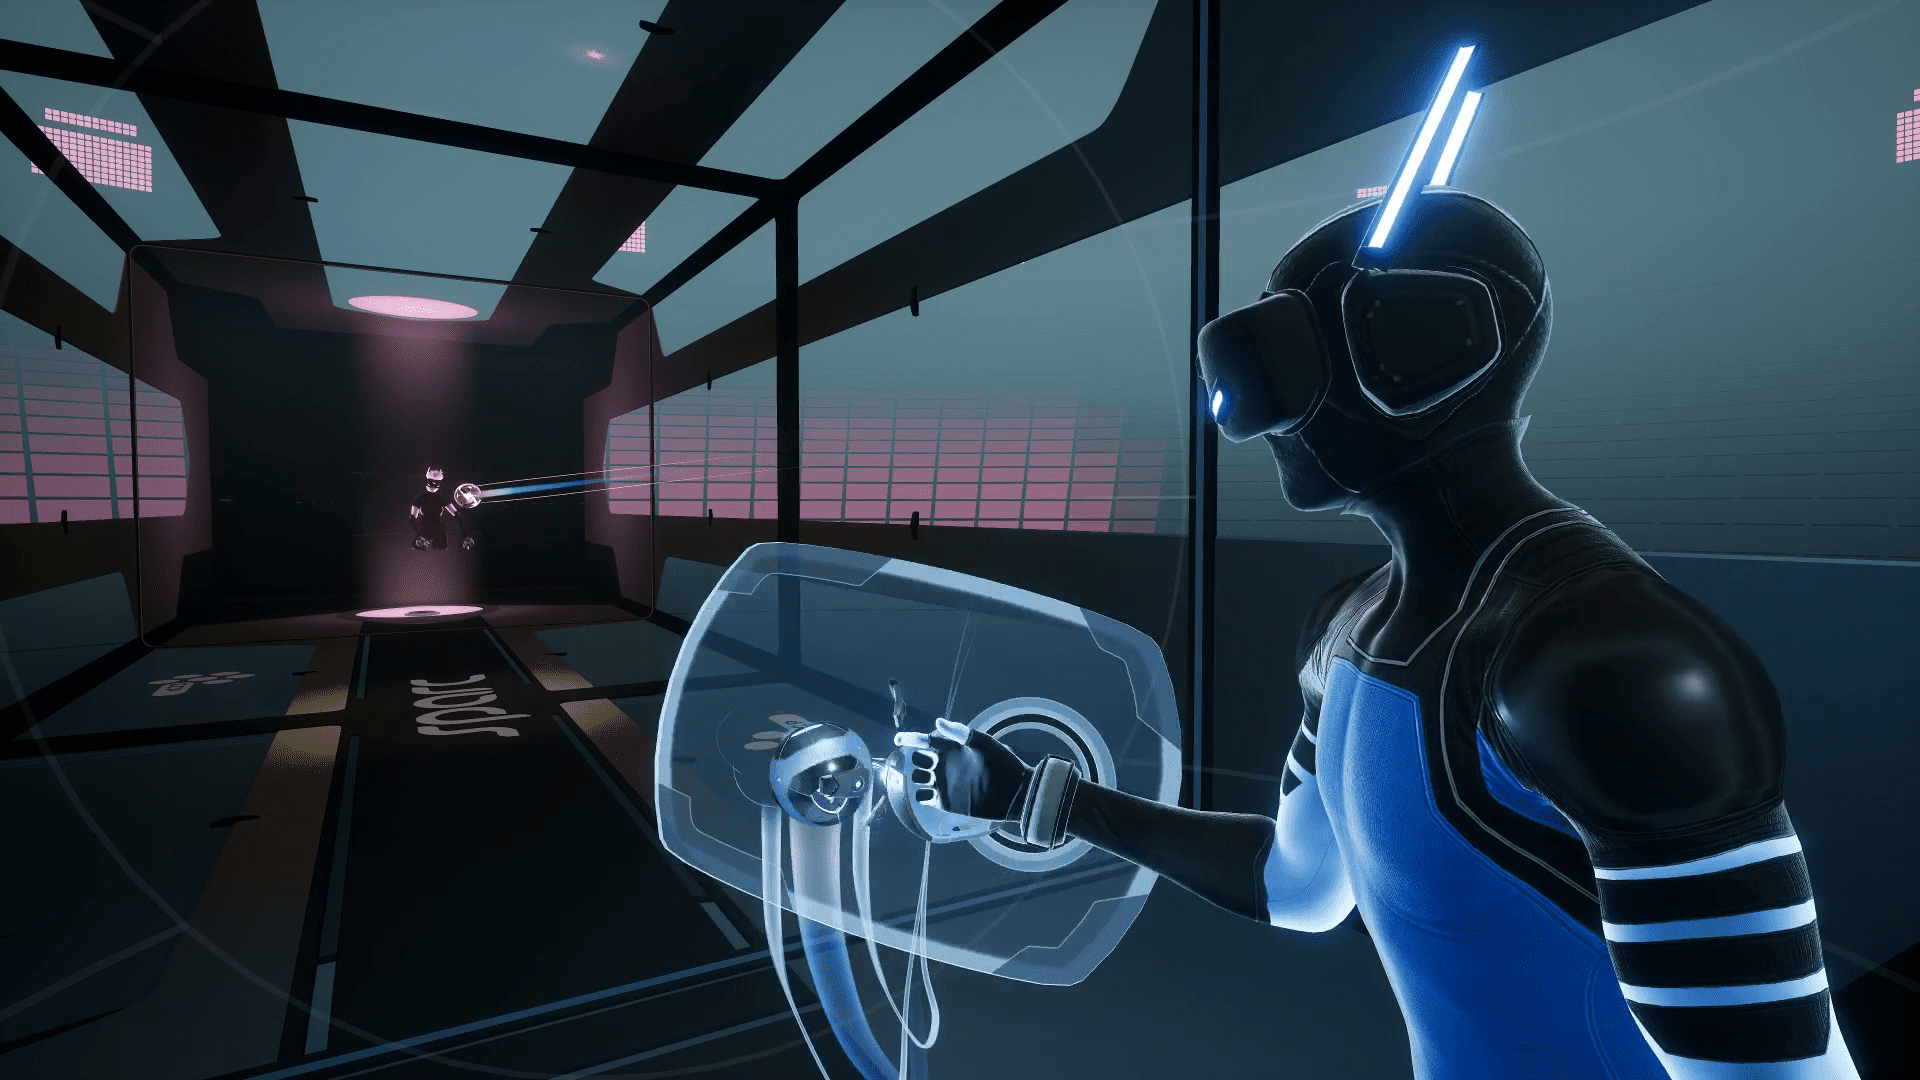 A figure in neon blue stands behind a translucent shield in an arena.